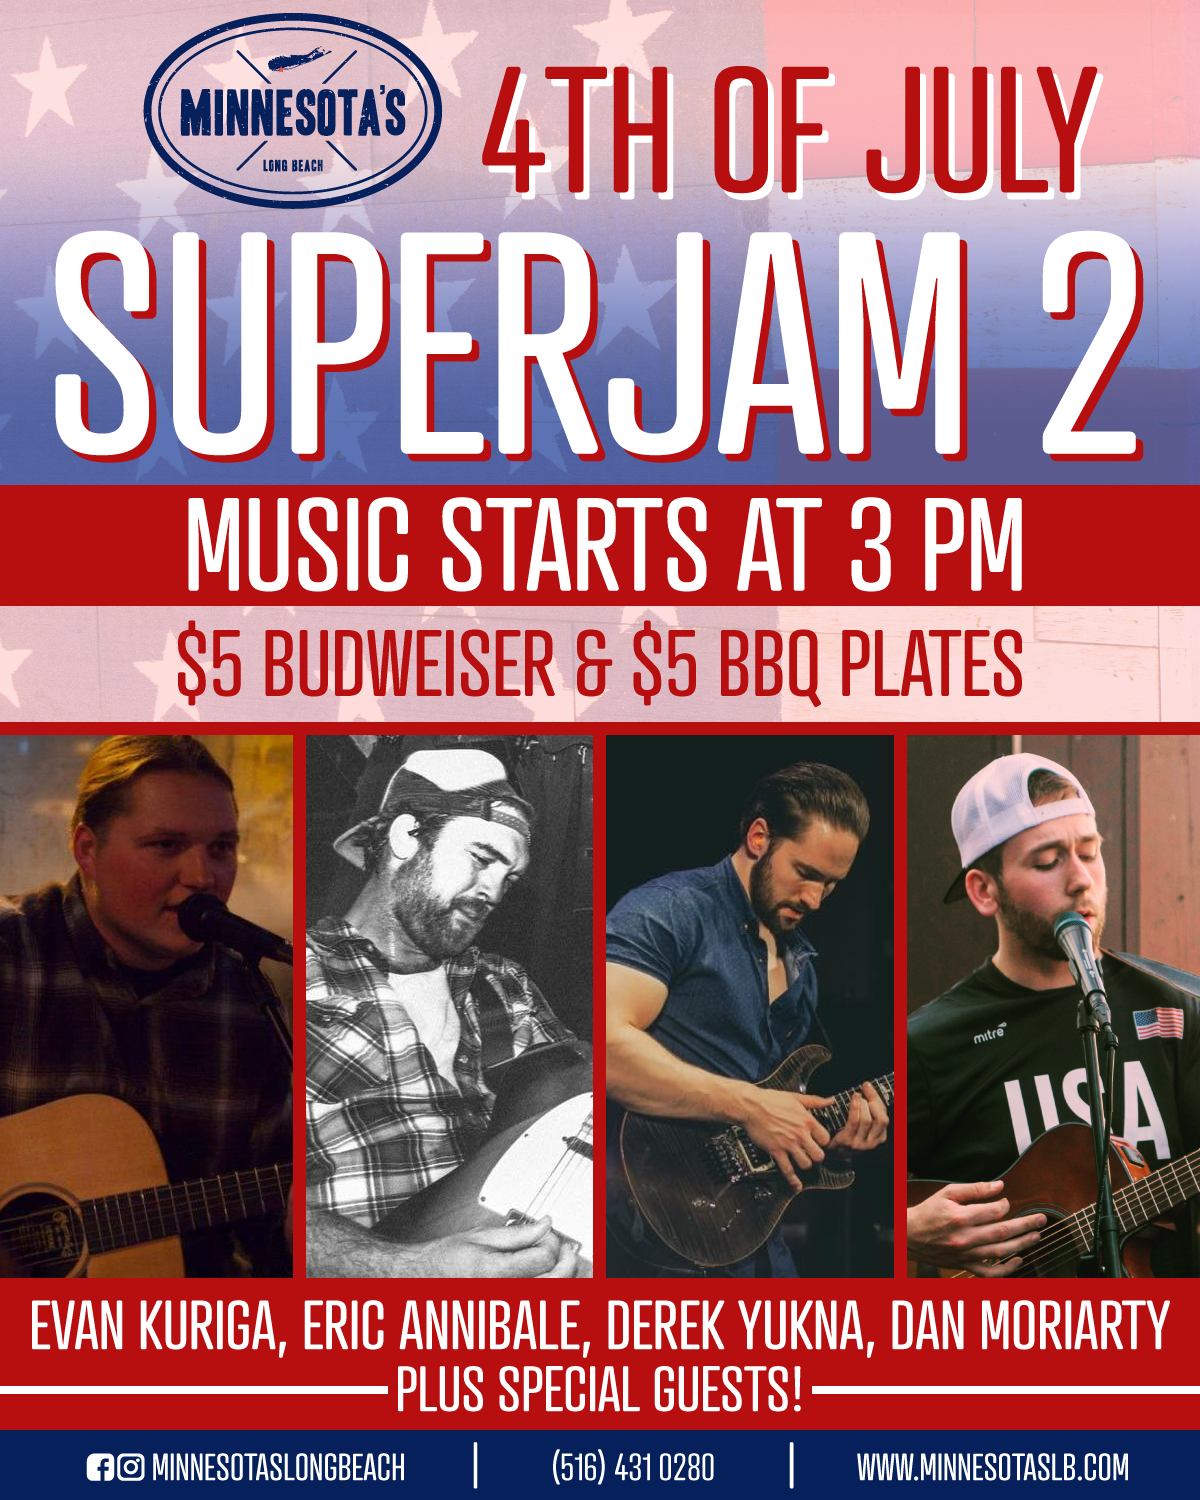 Superjam 2 with live music from Evan Kuriga, Eric Annibale, Derek Yukna, Dan Moriarty, and more on the 4th of July